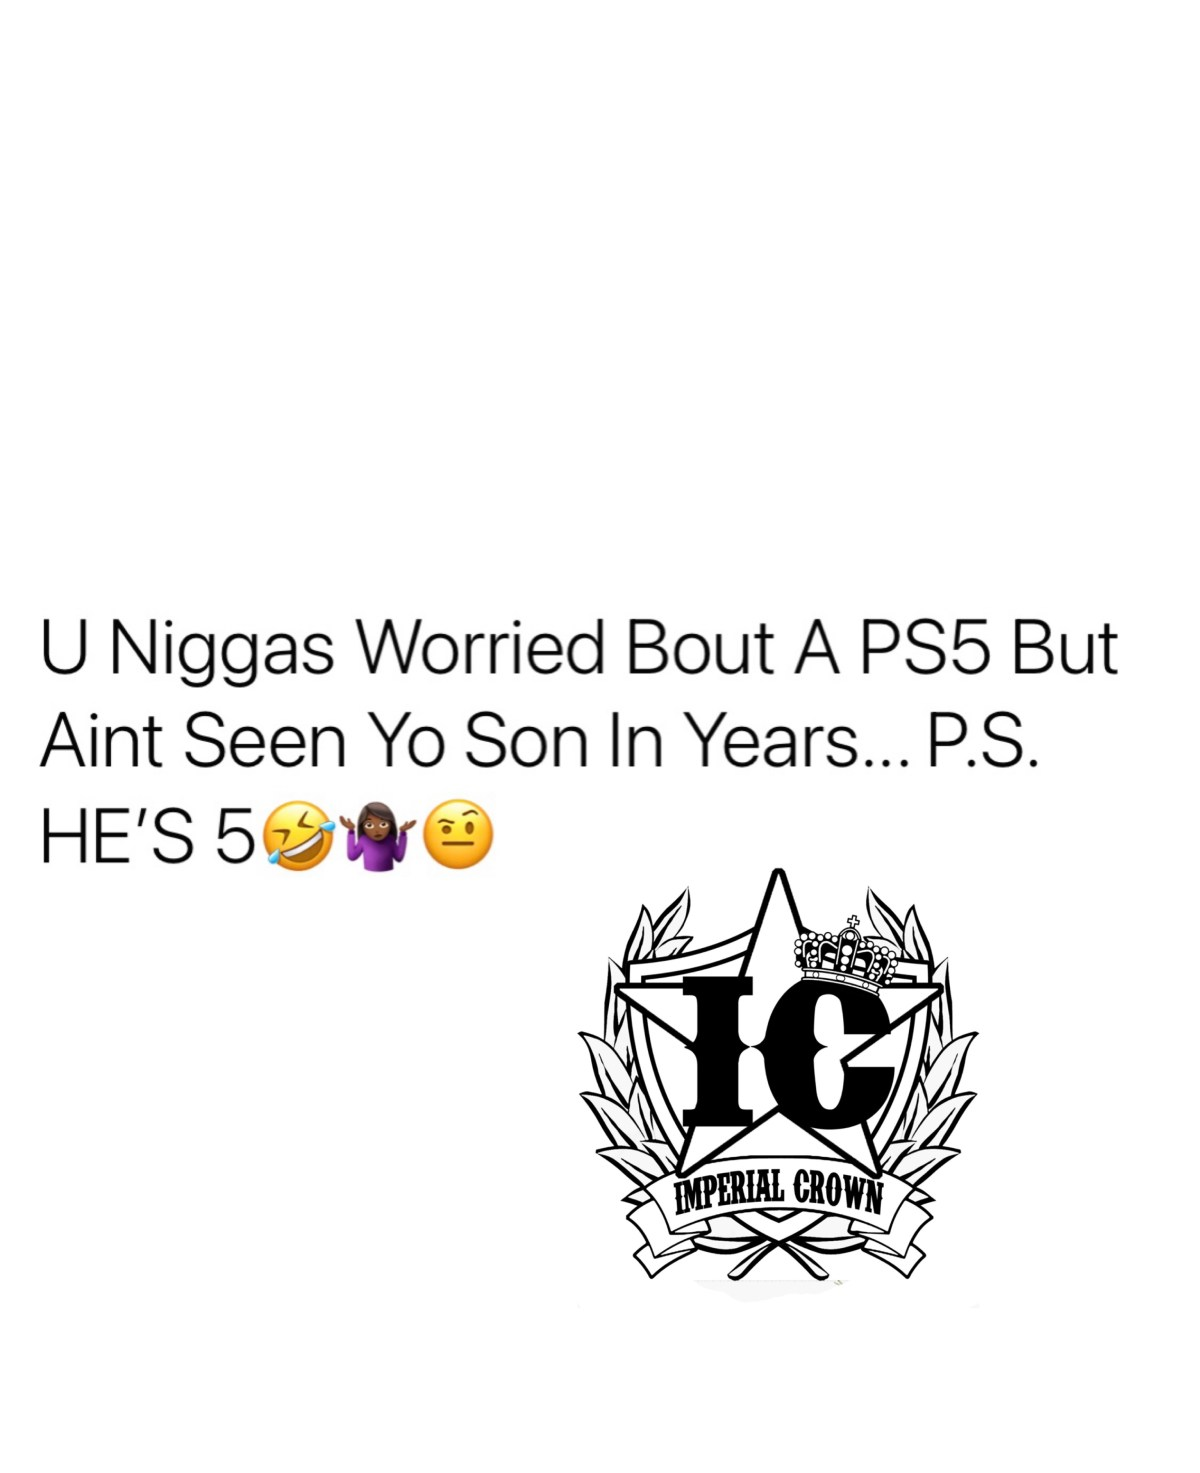 I niggas worried bout a PS5 but ain't seen yo son in years p.s. he's 5